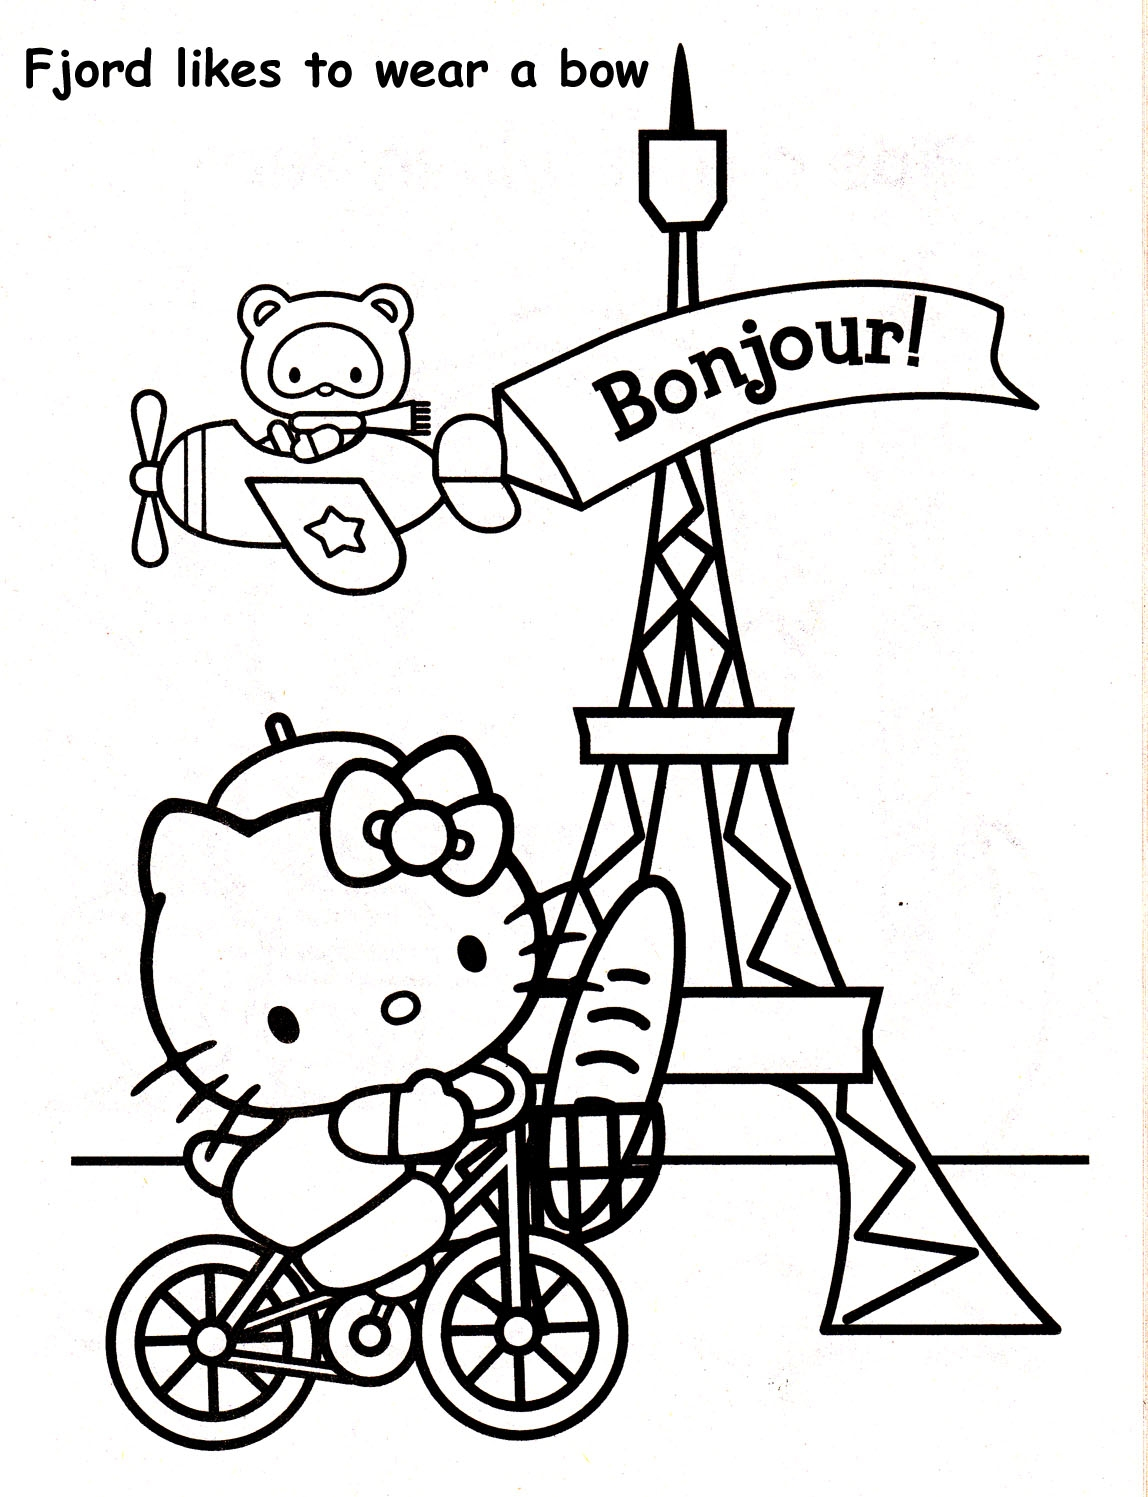 Paris France Coloring Pages At Getcolorings